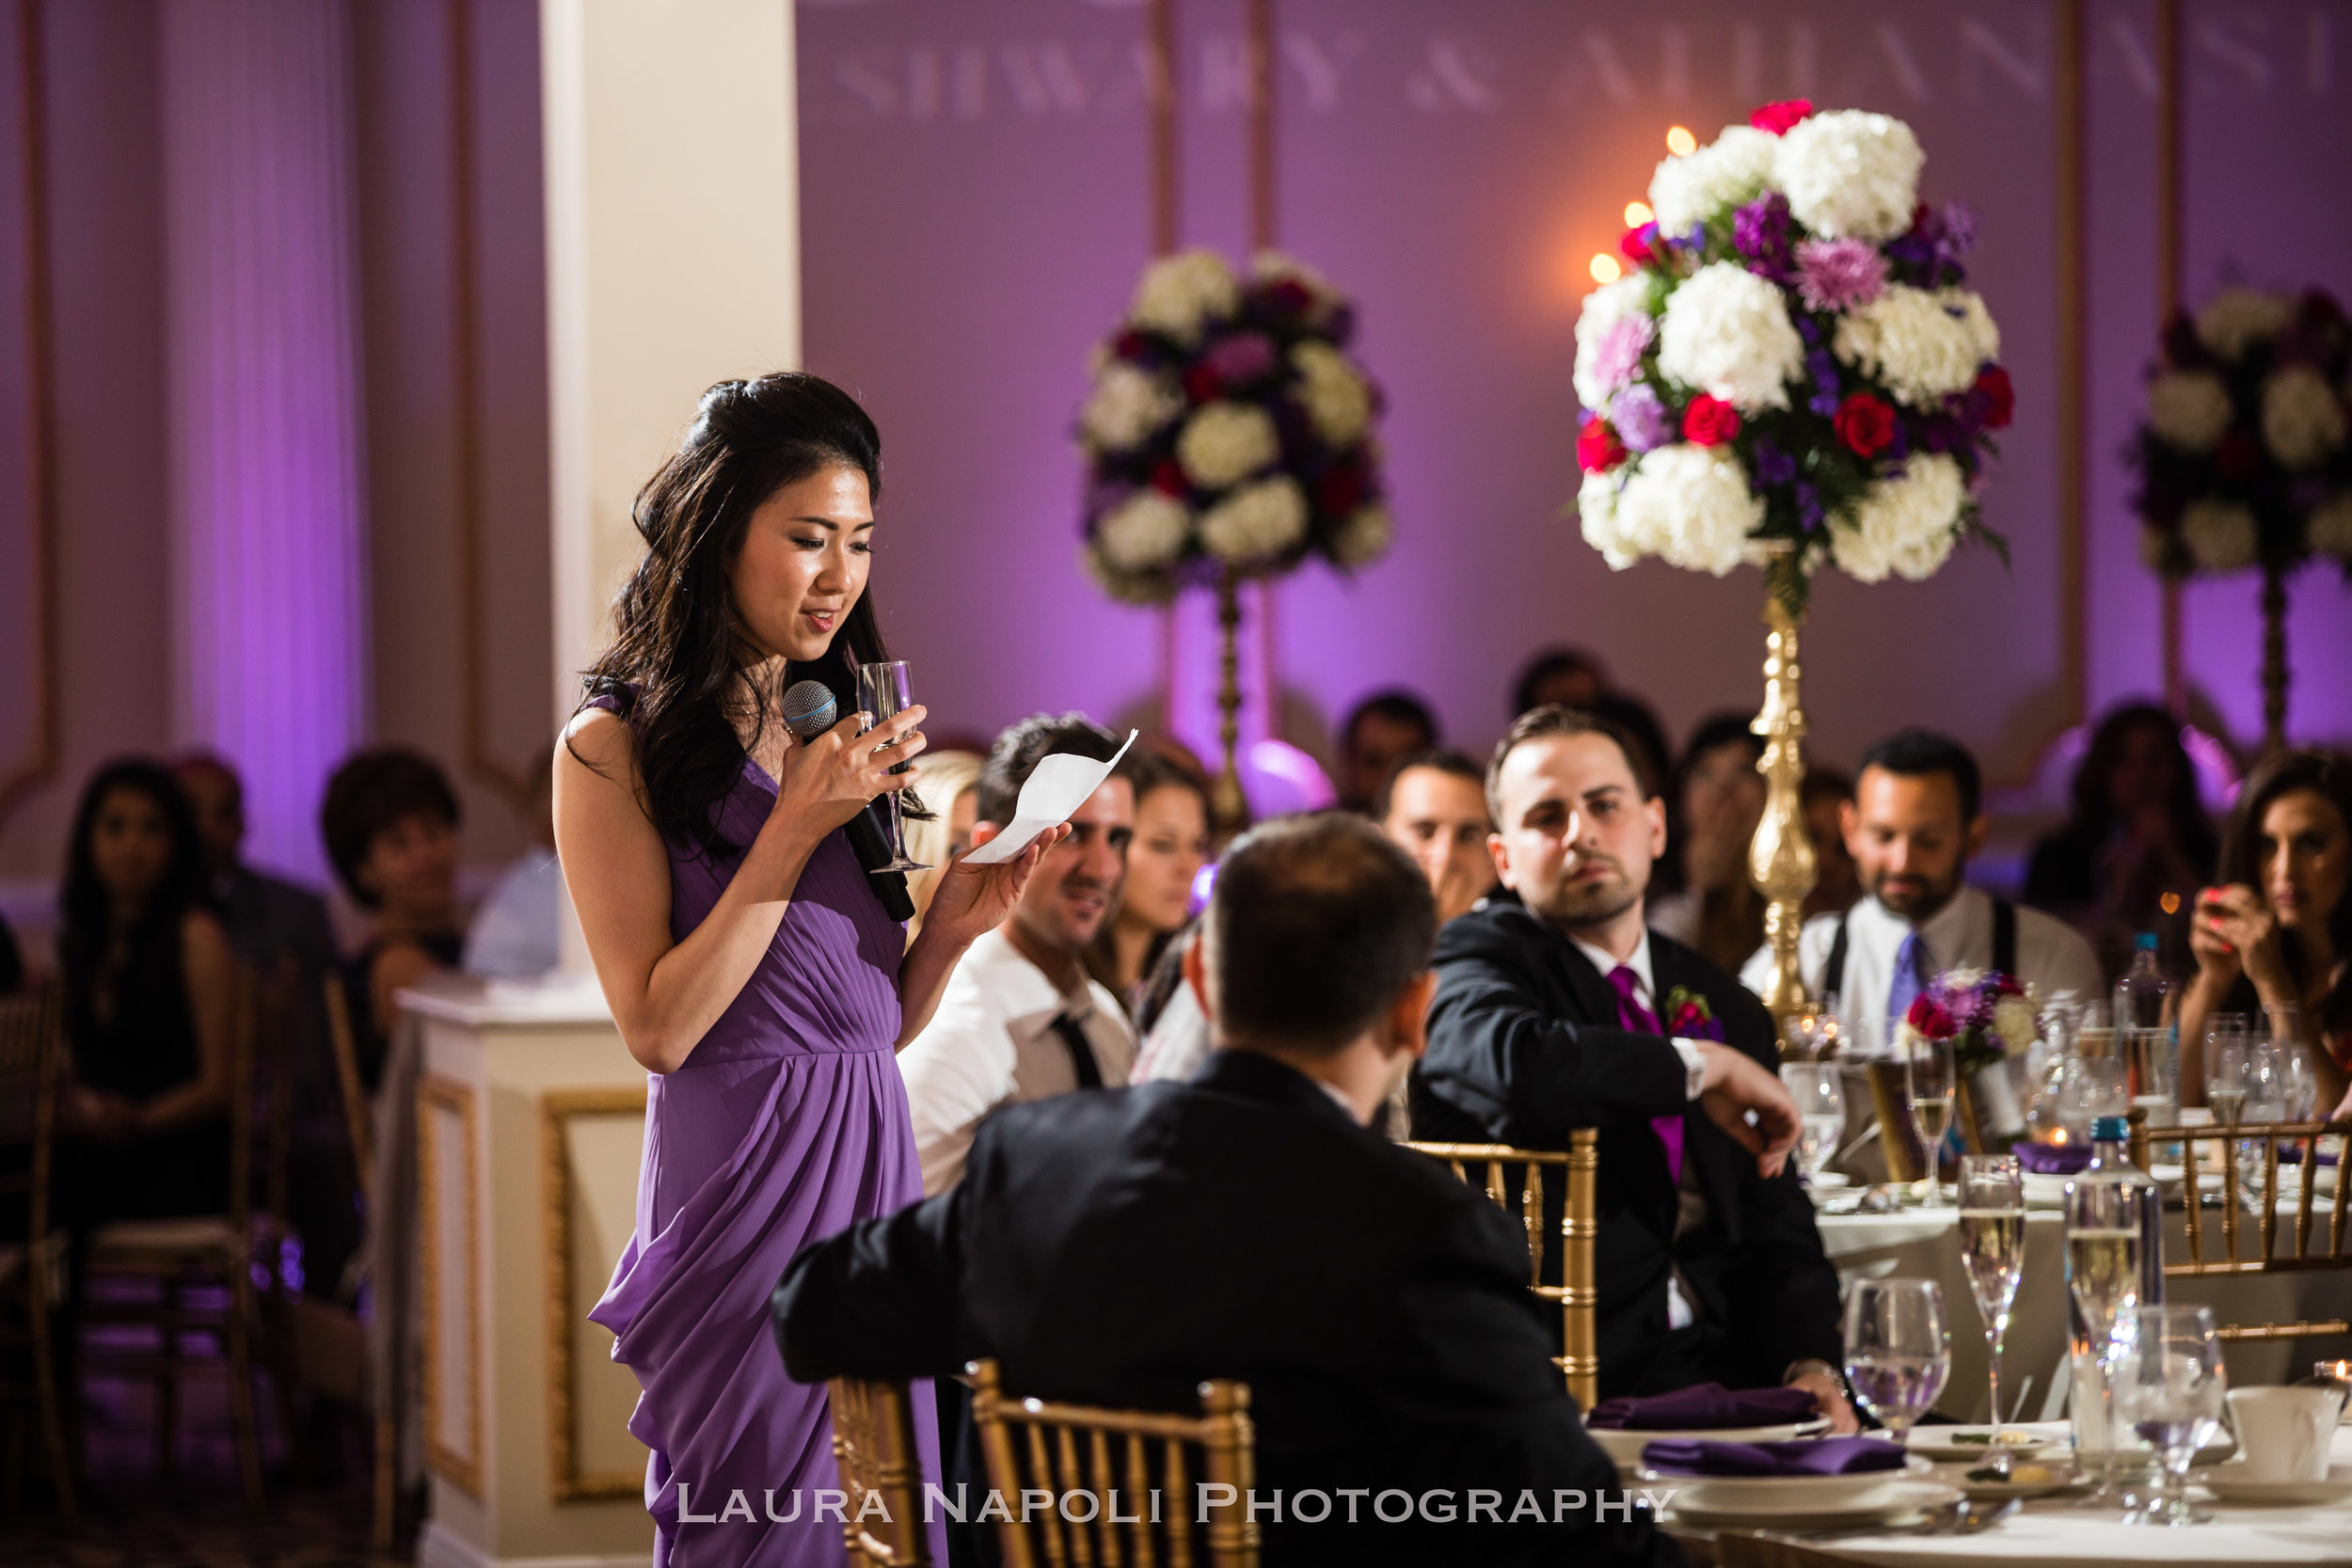 Scotlandrungolfclubweddingsouthjerseyweddingphotographer -37.jpg